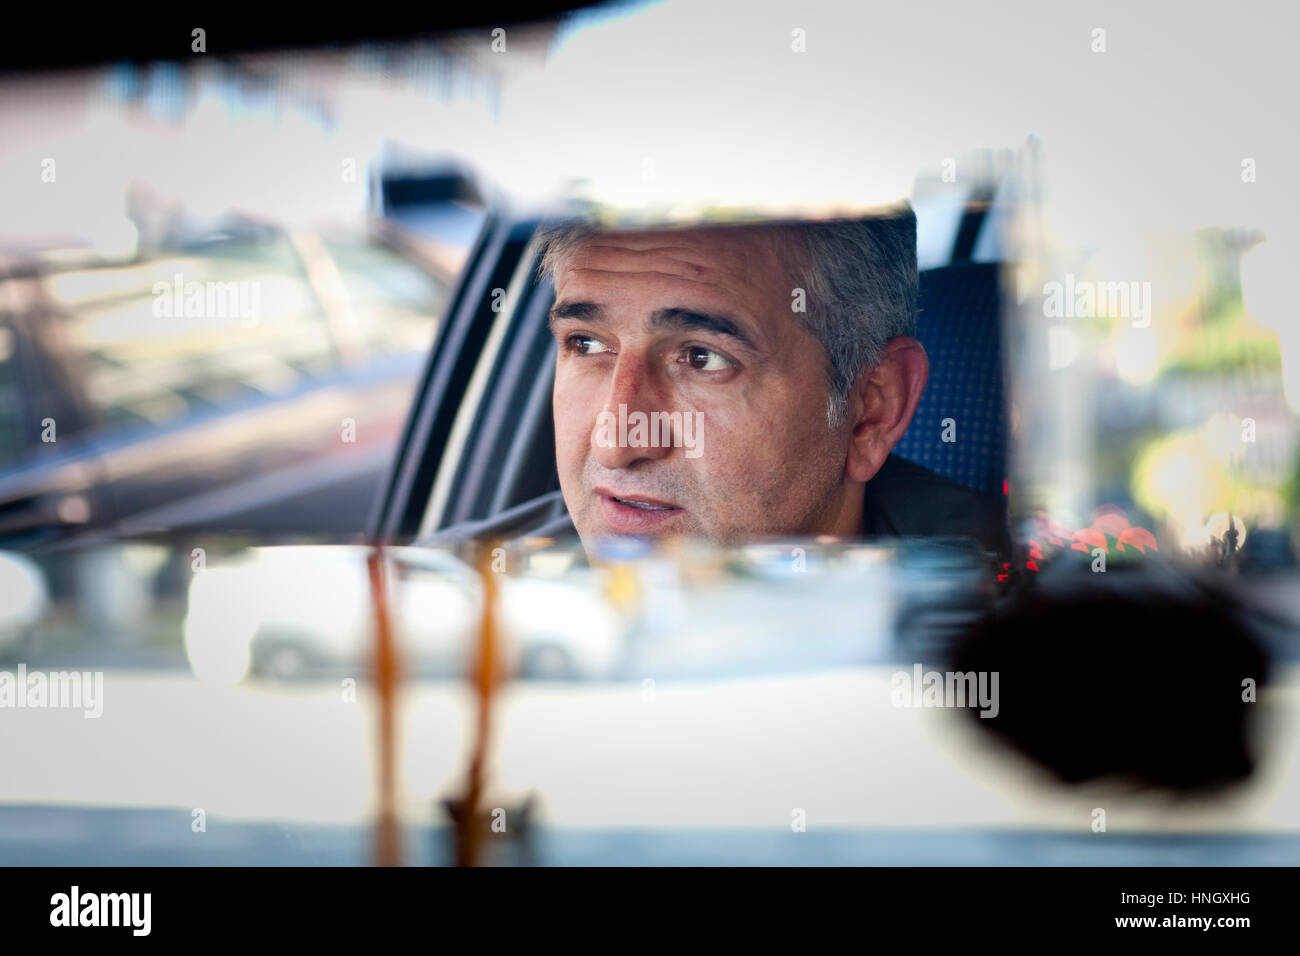 Istanbul, Turkey - November, 7 2009: Man's face reflected in rear view mirror as he drives a taxi through the - Stock Image